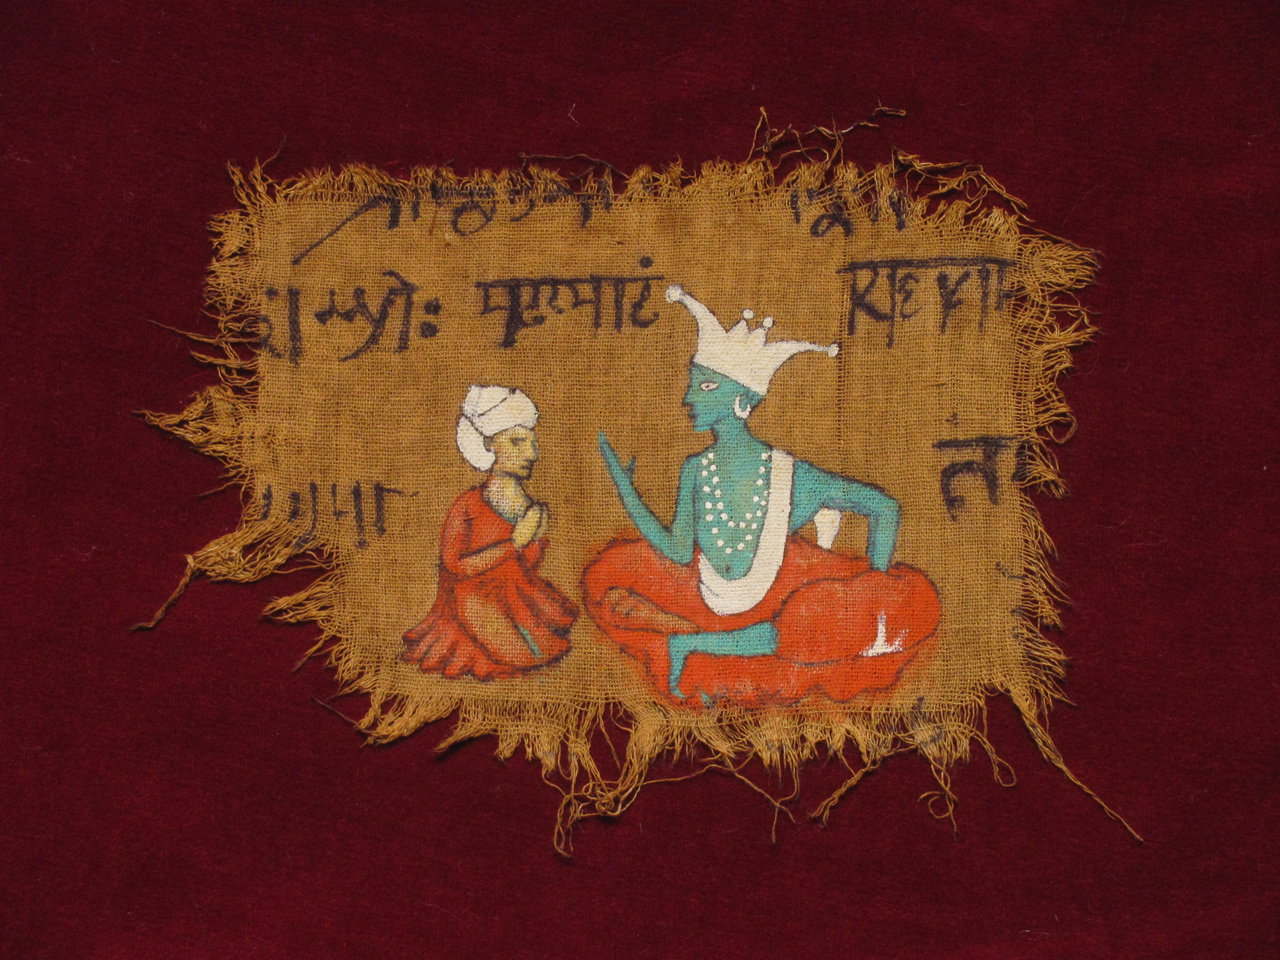 ancient_sanskrit_manuscript__india__c__200_bce_by_victorianspectre-d6t94hr